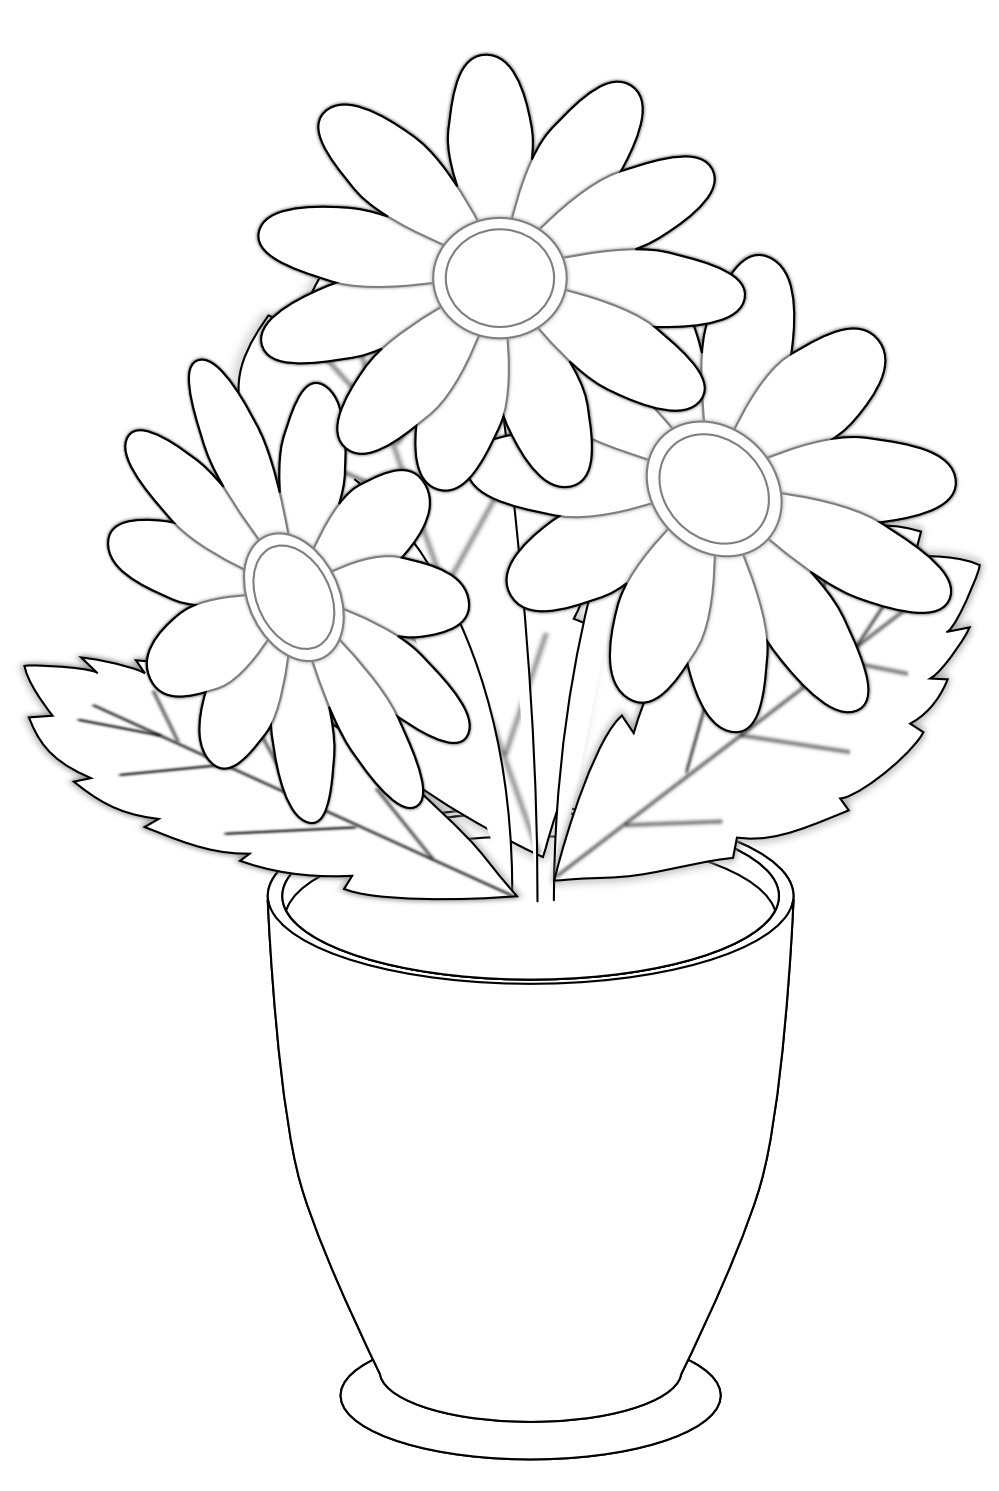 Clip Art Of Flower Vase on vase of sunflowers clip art, cartoon vase clip art, roses clip art, vase with flowers, pot of flowers clip art, blanket of flowers clip art, butterfly clip art, daisy flower clip art, tree clip art, antique vase clip art, vase of tulips clip art, rug clip art, flower vase pattern clip art, black flower vase clip art, books clip art, flower border clip art, basket of flowers clip art, broken vase clip art, row of flowers clip art, vase clip art template,